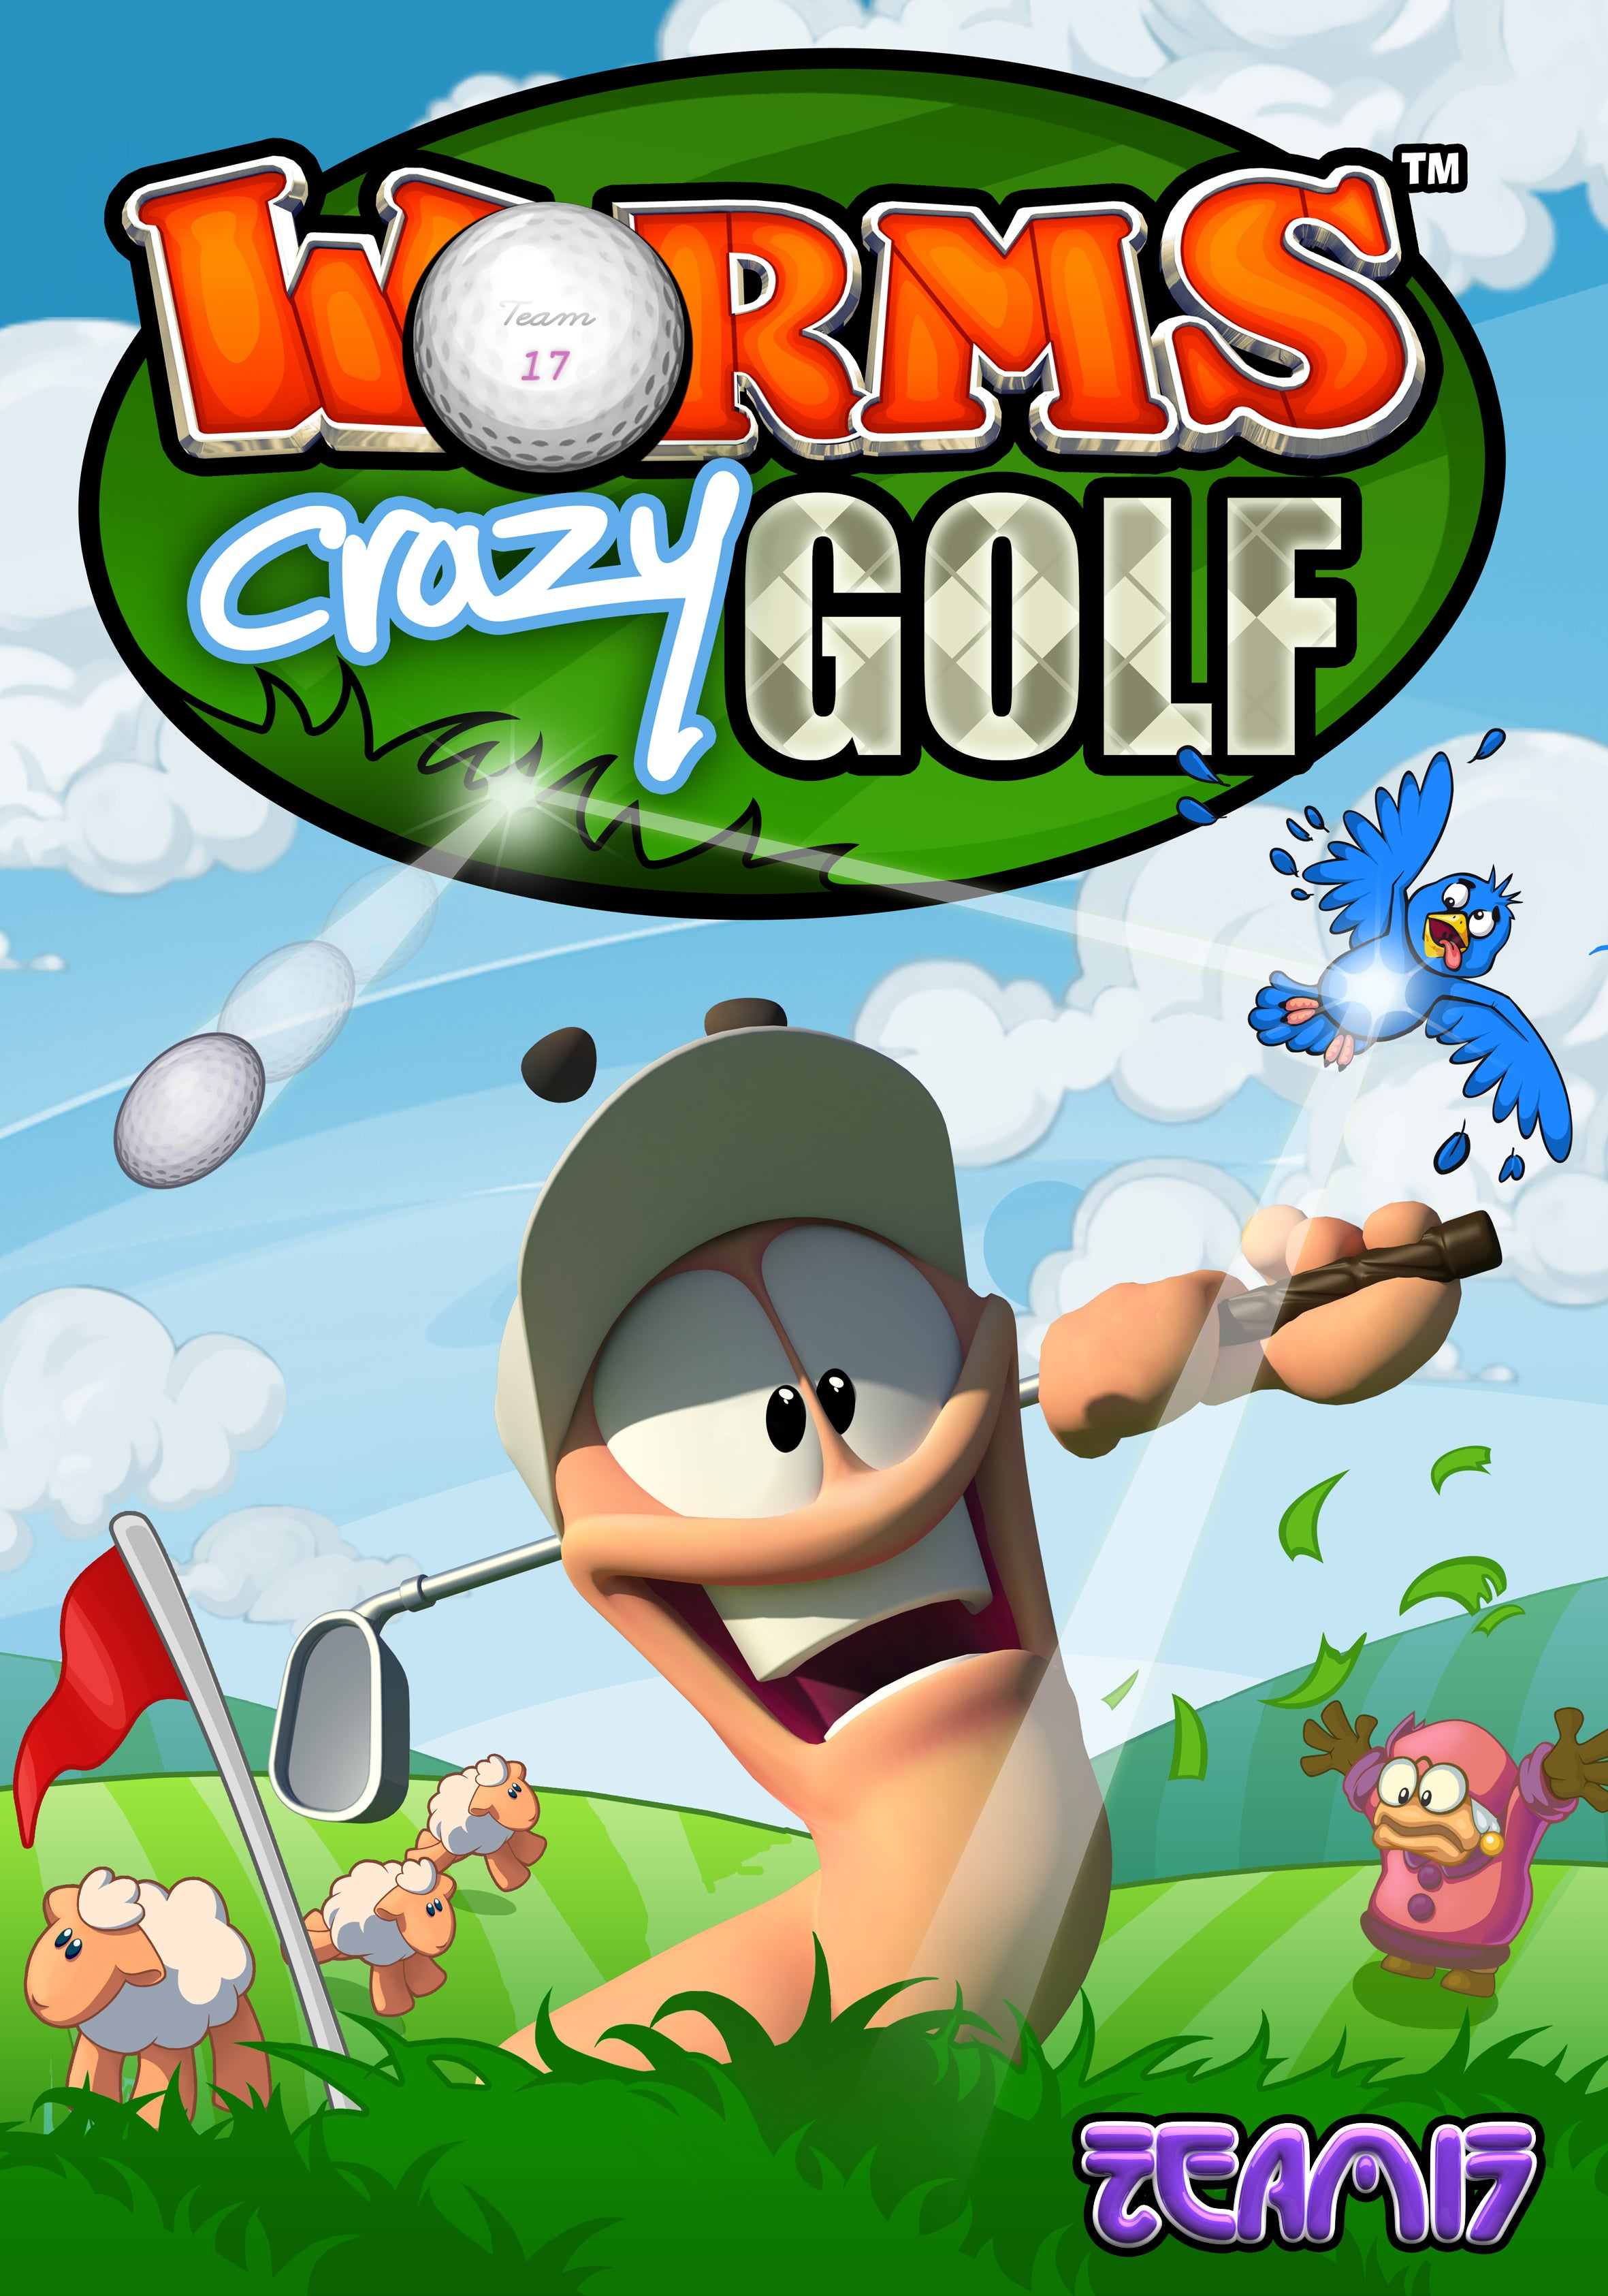 Worms armageddon 2 ps3 download